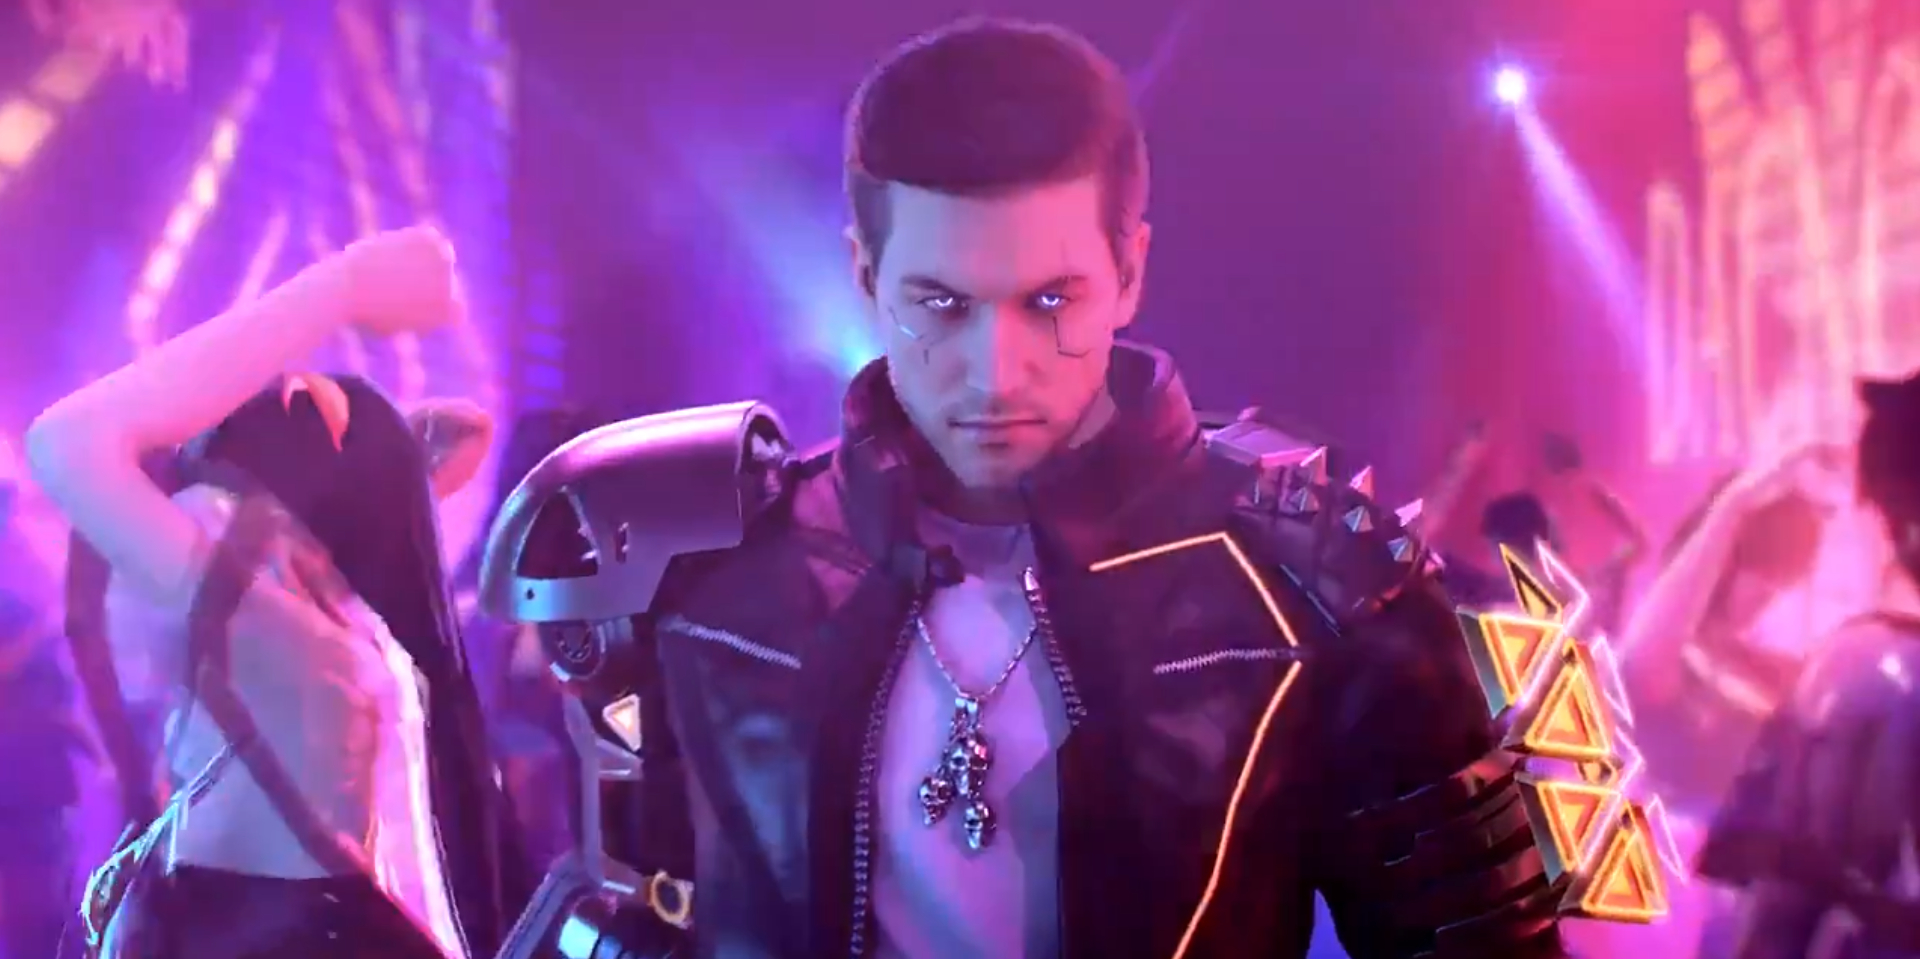 Is Code: T Theseus a rip-off of Cyberpunk 2077?